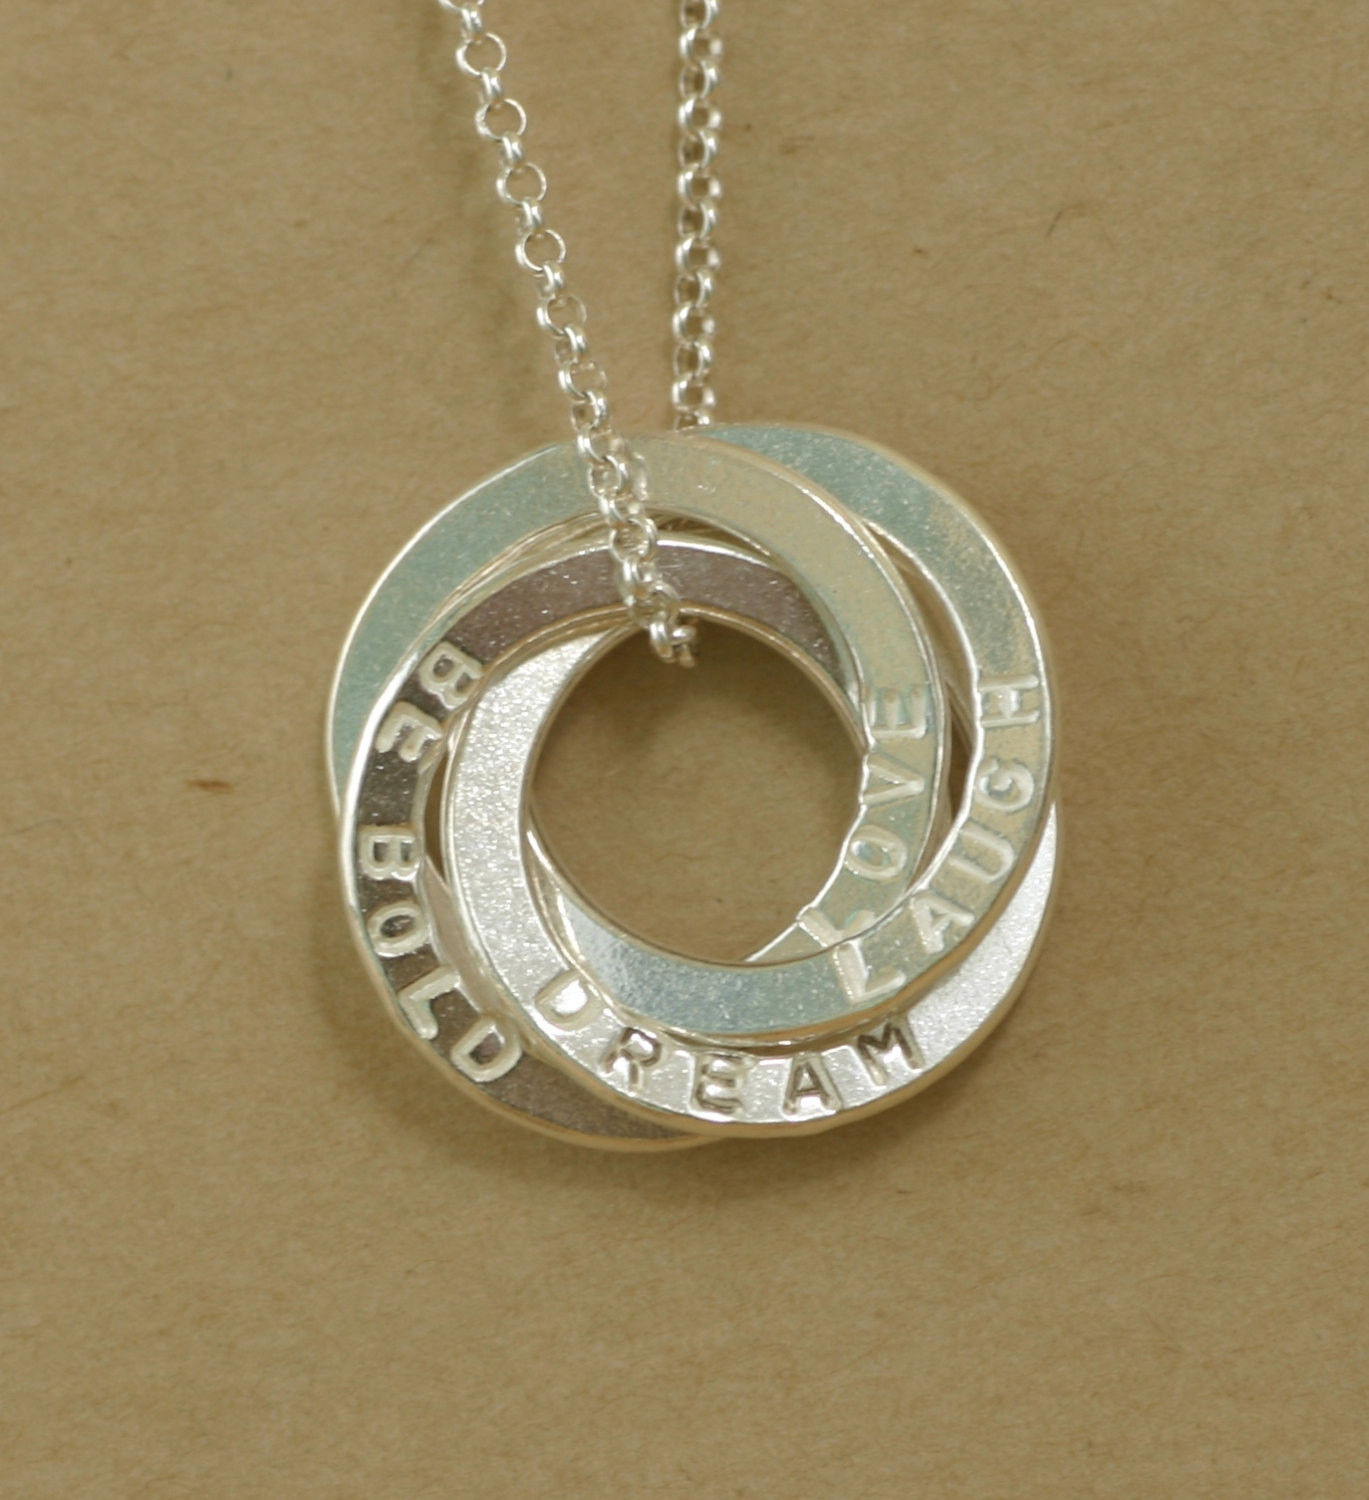 Graduation Jewelry Gift Ideas For Her  Gift for goddaughter daughter necklace graduation t